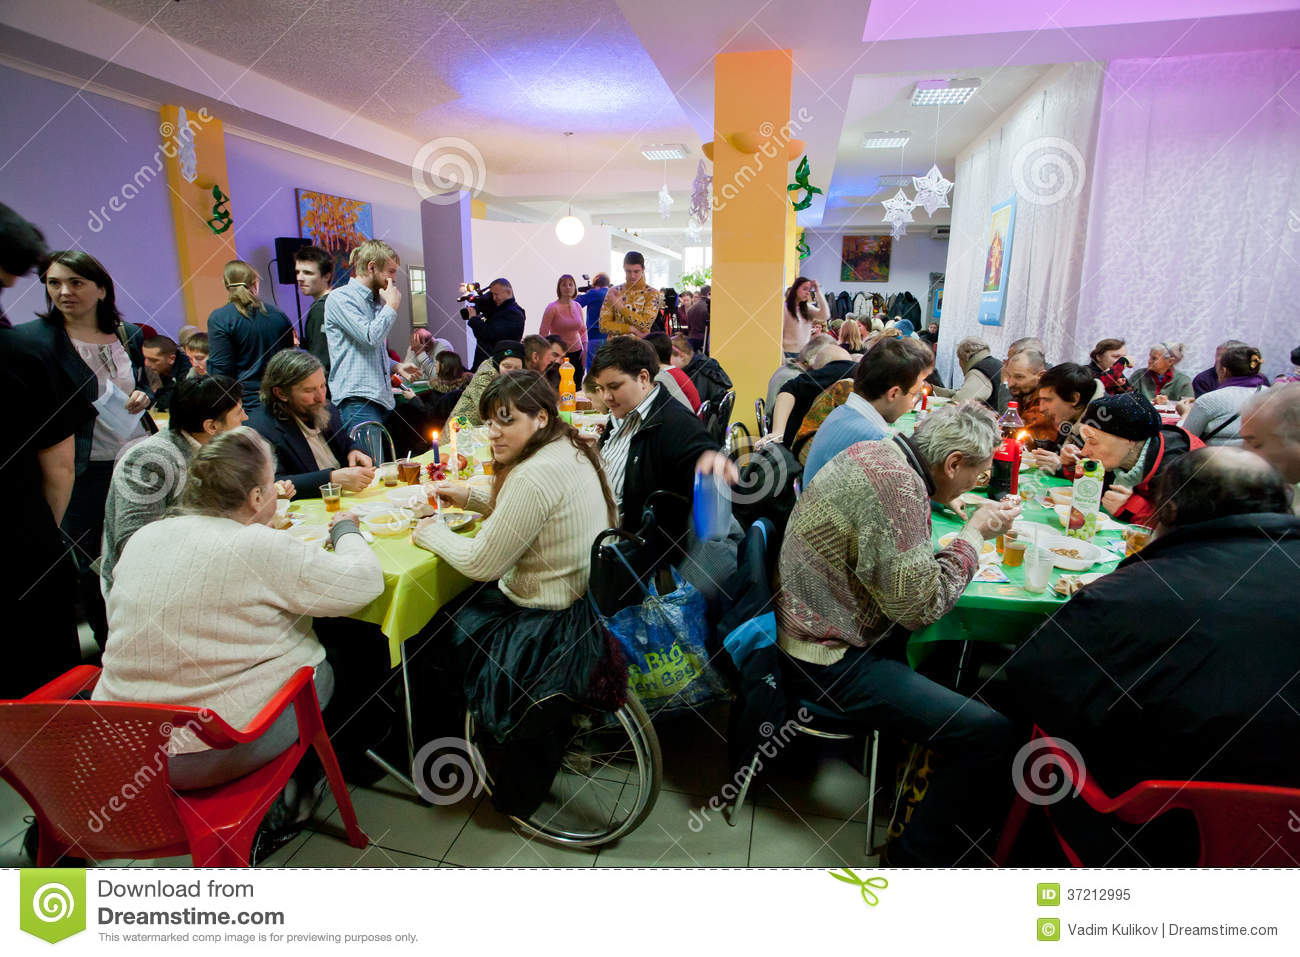 Poor People Sit Around Tables With Food At The Christmas